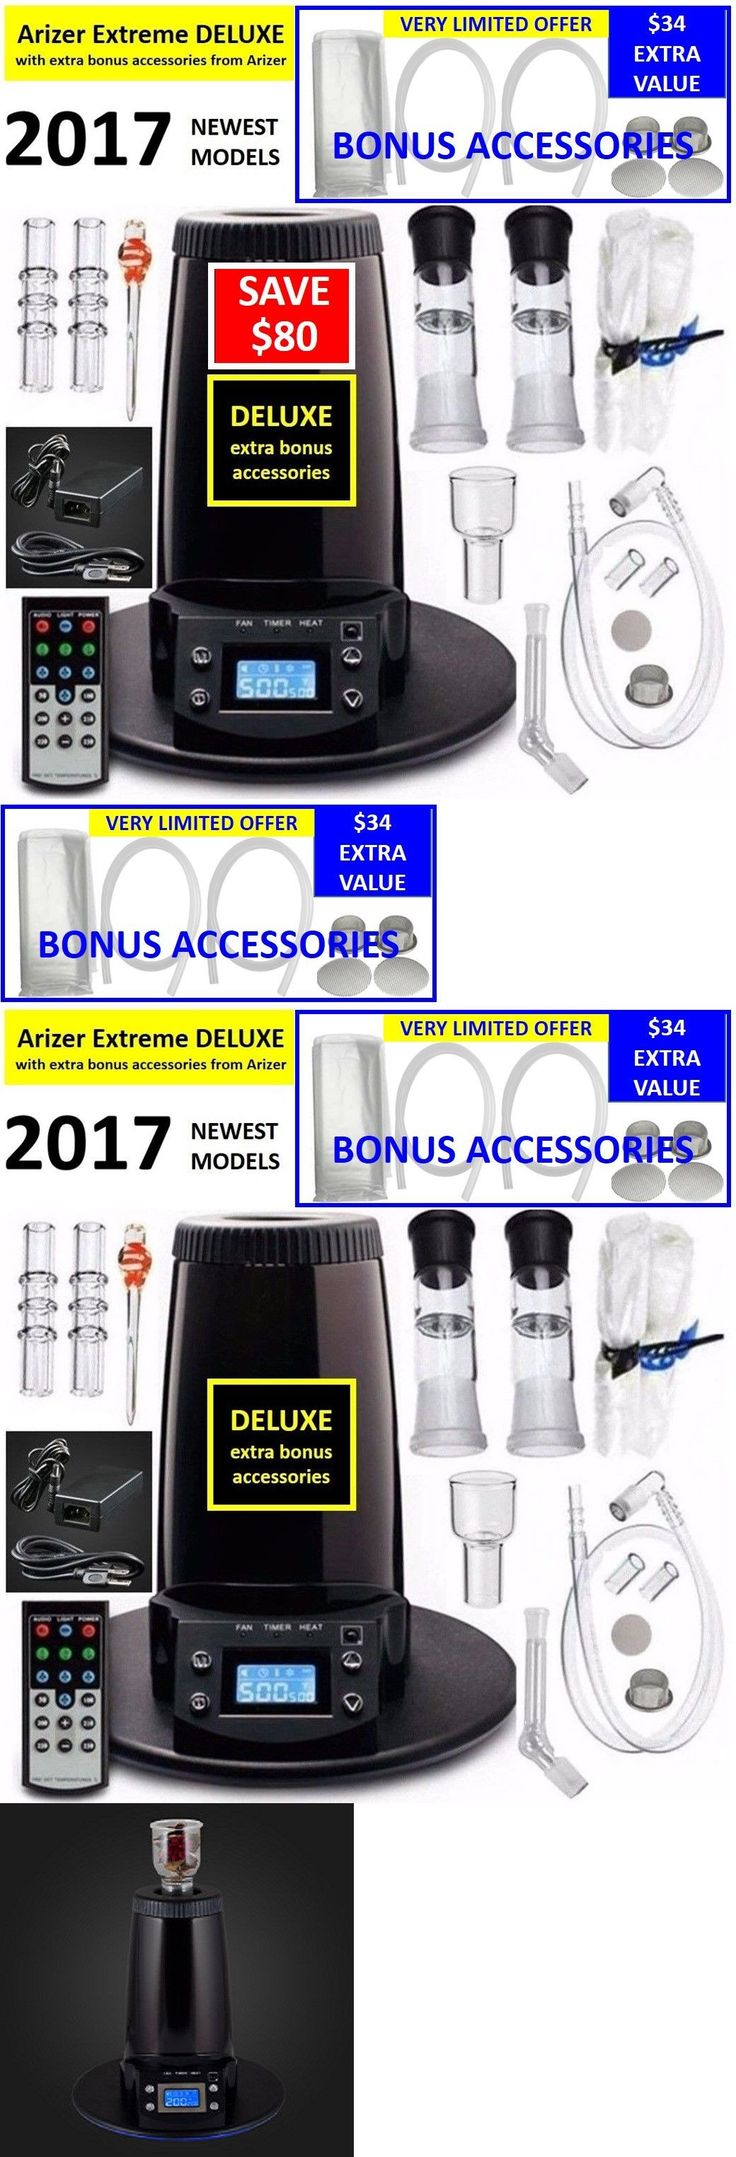 Home gt accessories gt bona pro series vinyl multipurpose cleaner - Other Gadgets 2017 New Arizer Extreme Q 4 0 Digital Deluxe Extra Accessories 2